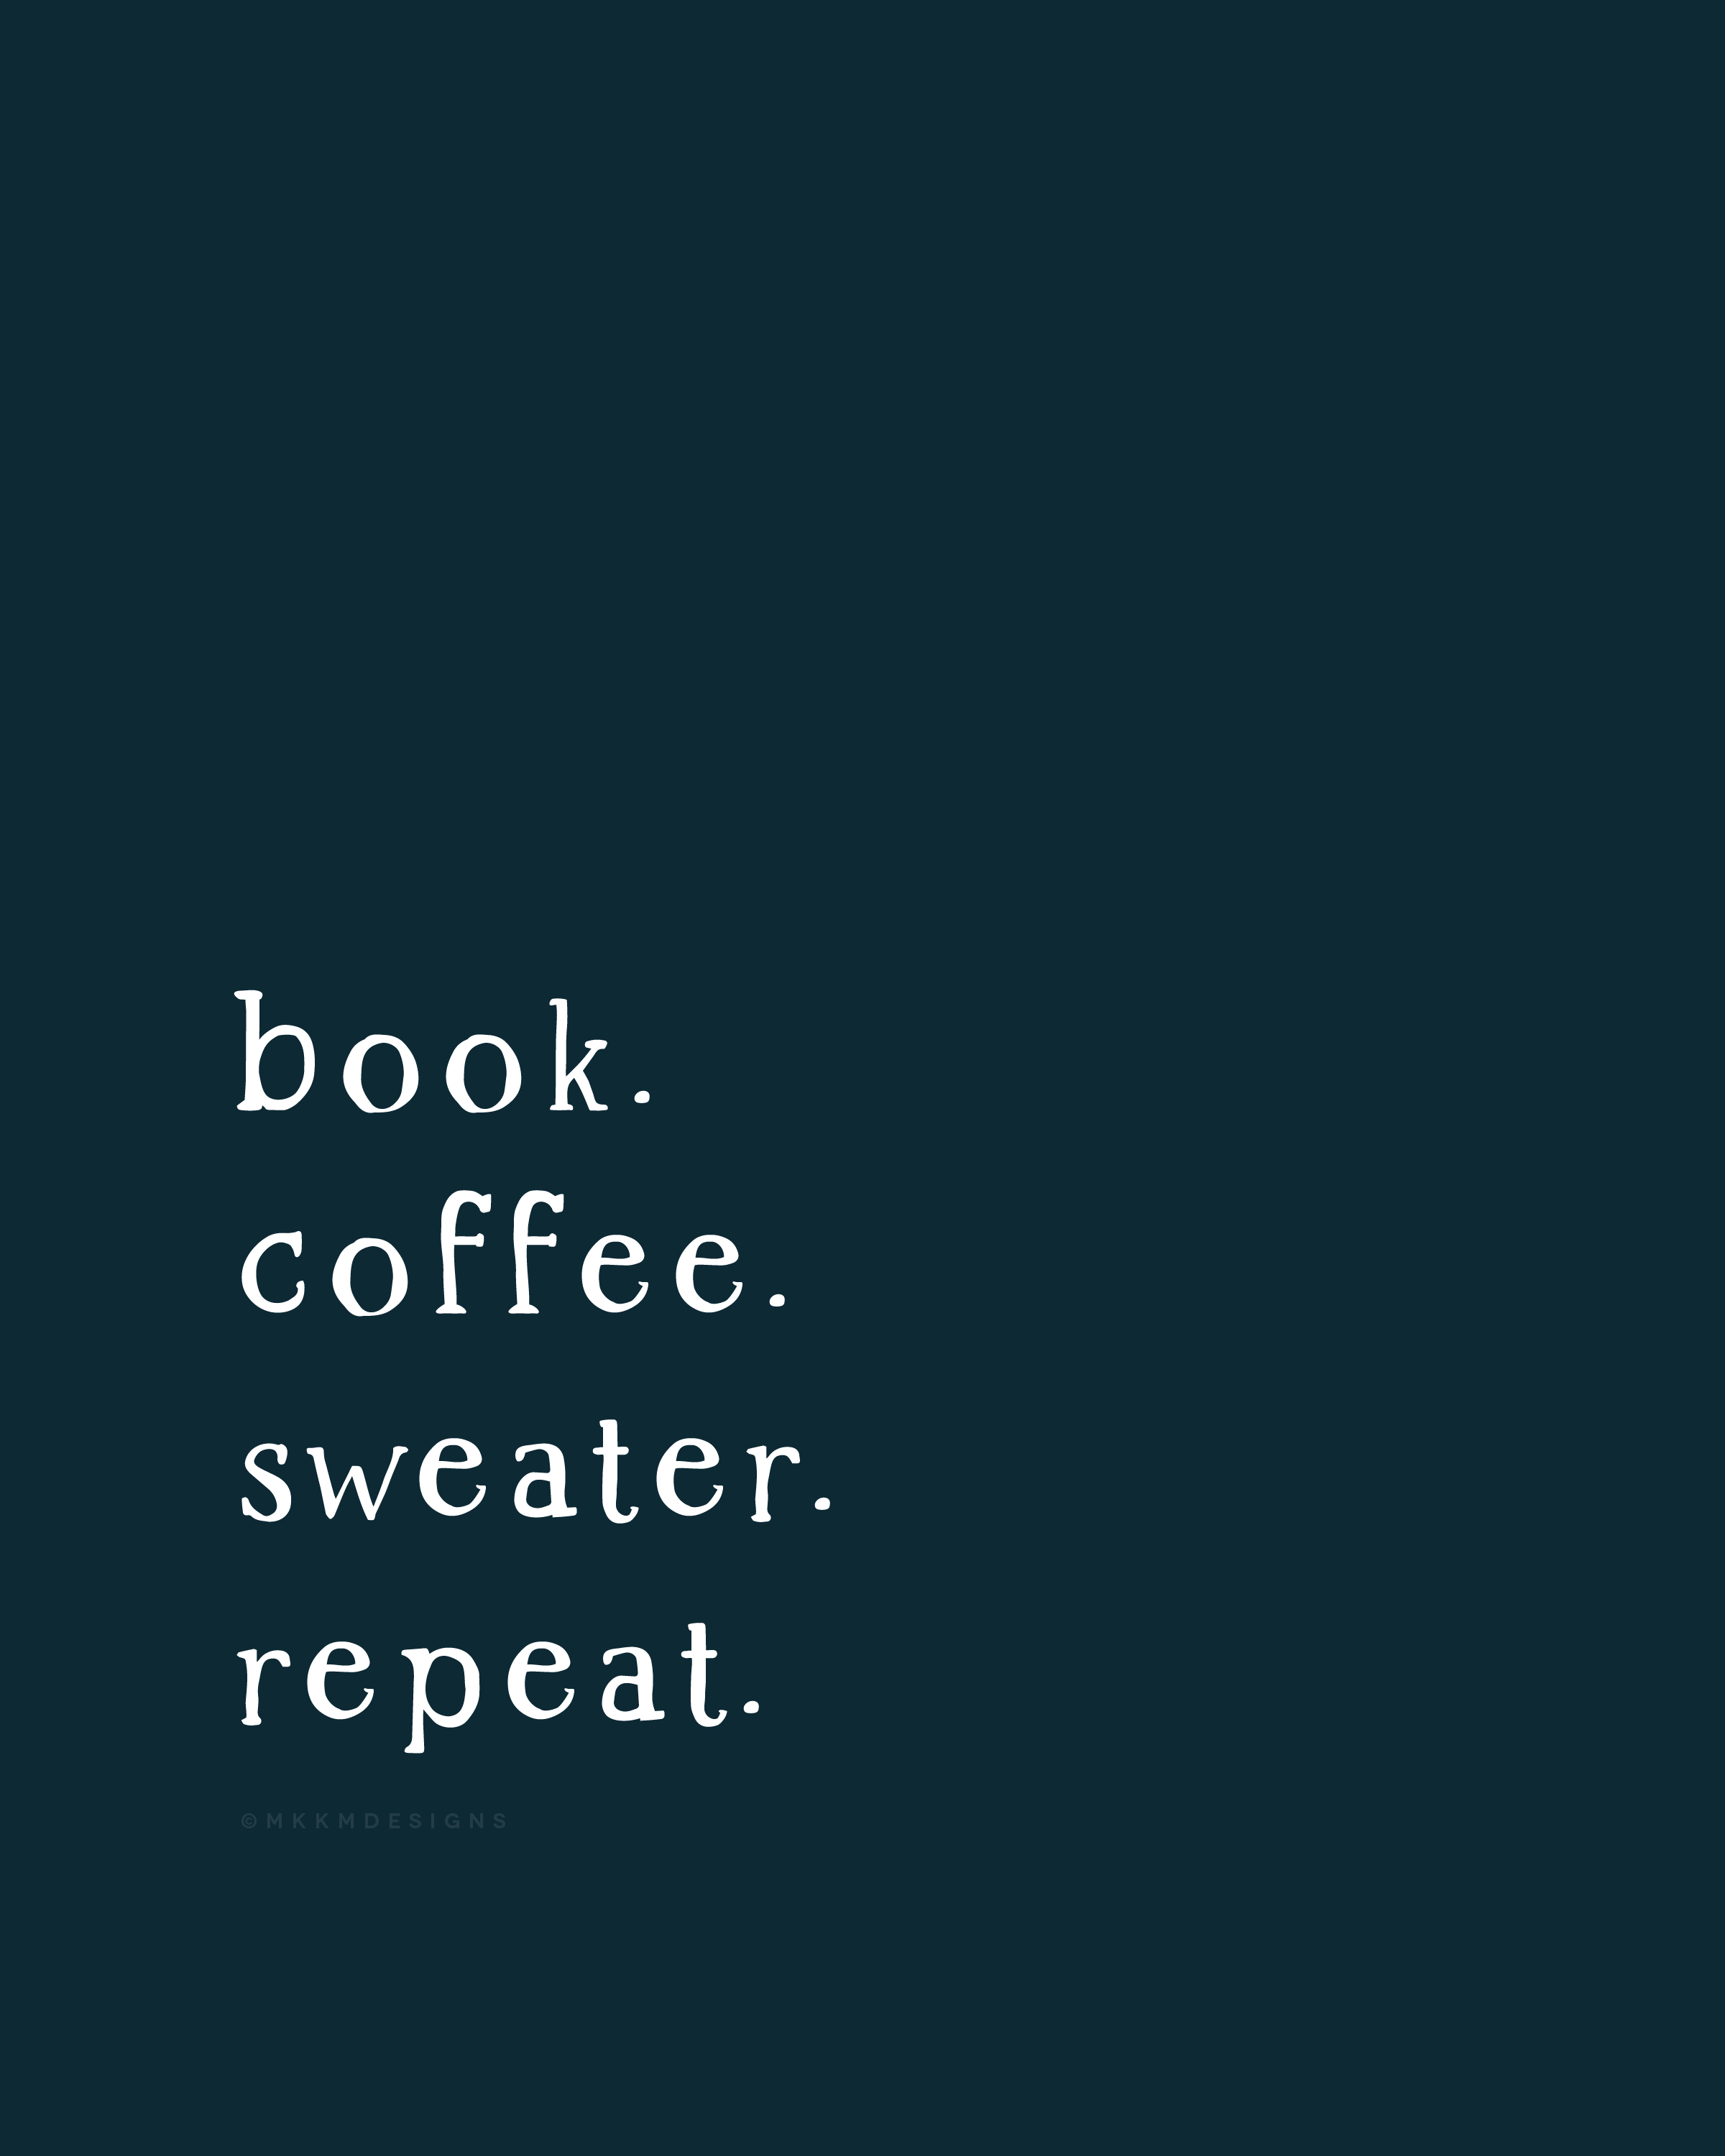 book. coffee. sweater. repeat. #mood ✦ Quote of the day ✦ morning feels, New Years Vibes  // ✦ mkkmdesigns